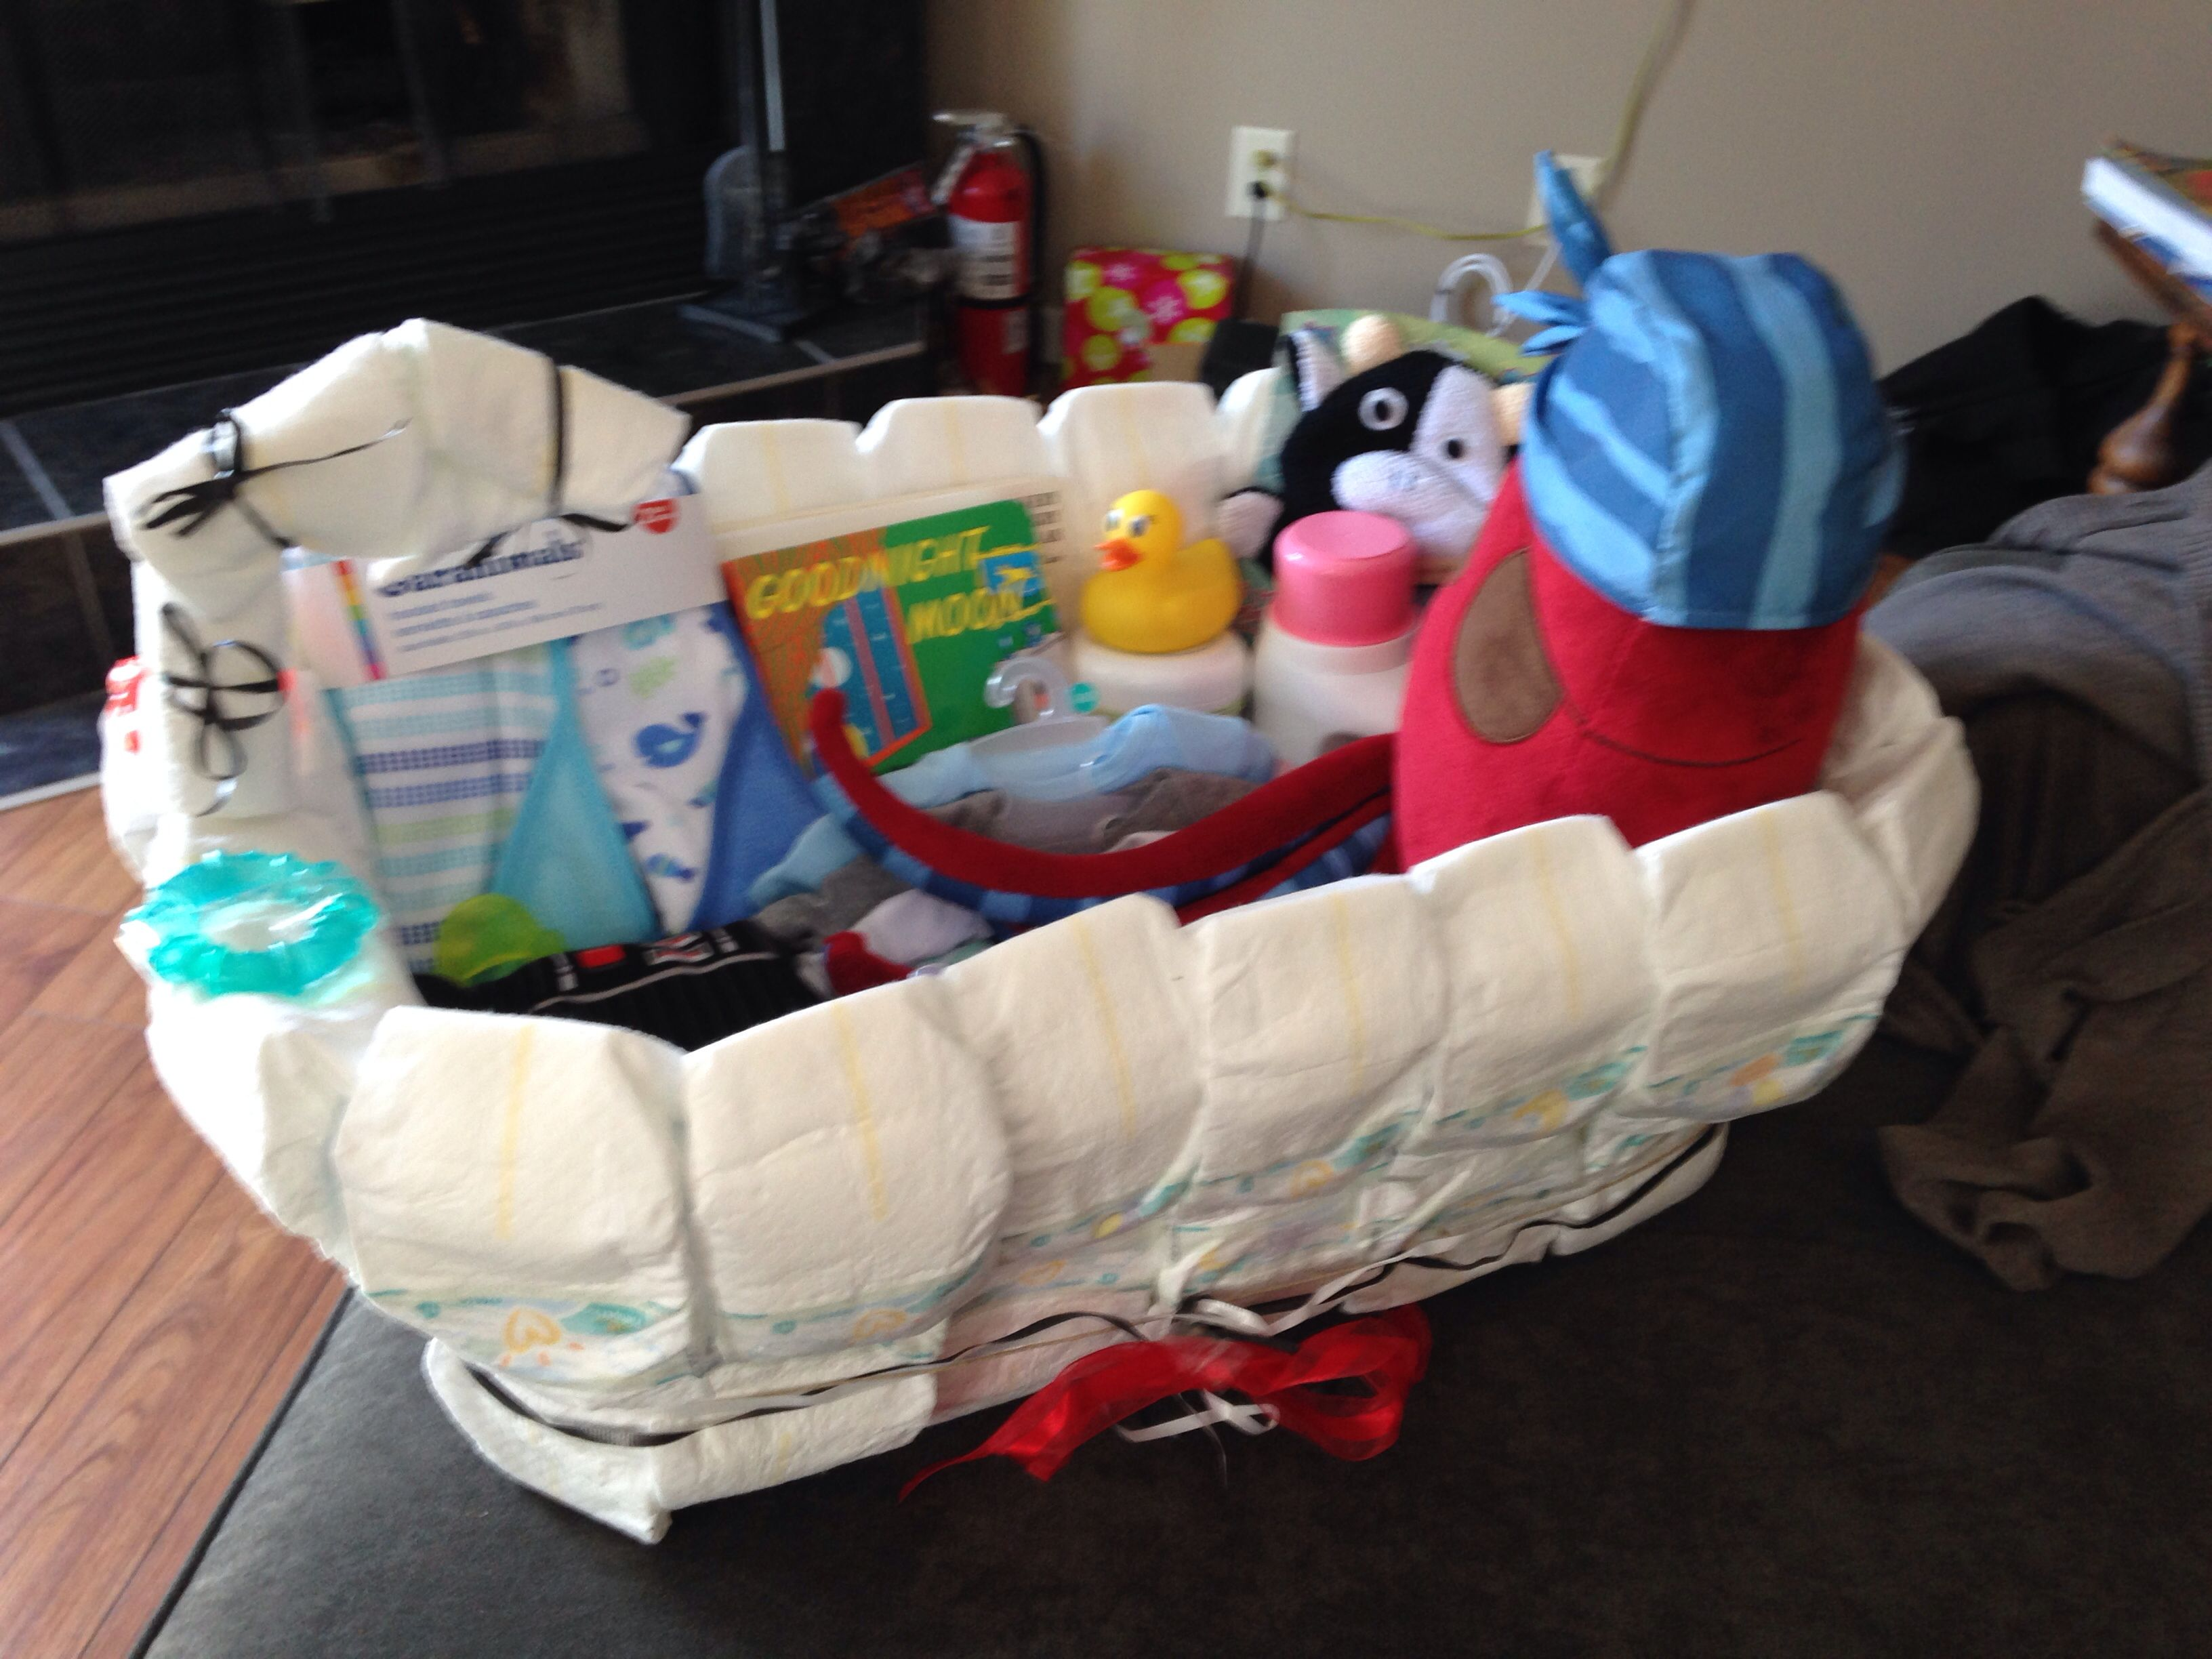 Baby Shower Gift Baby Diaper Bath First I Bought A Laundry Basket And Wrapped It With Newborn Diapers I Used Cr Baby Bath Gift Bath Gift Basket Bath Gift